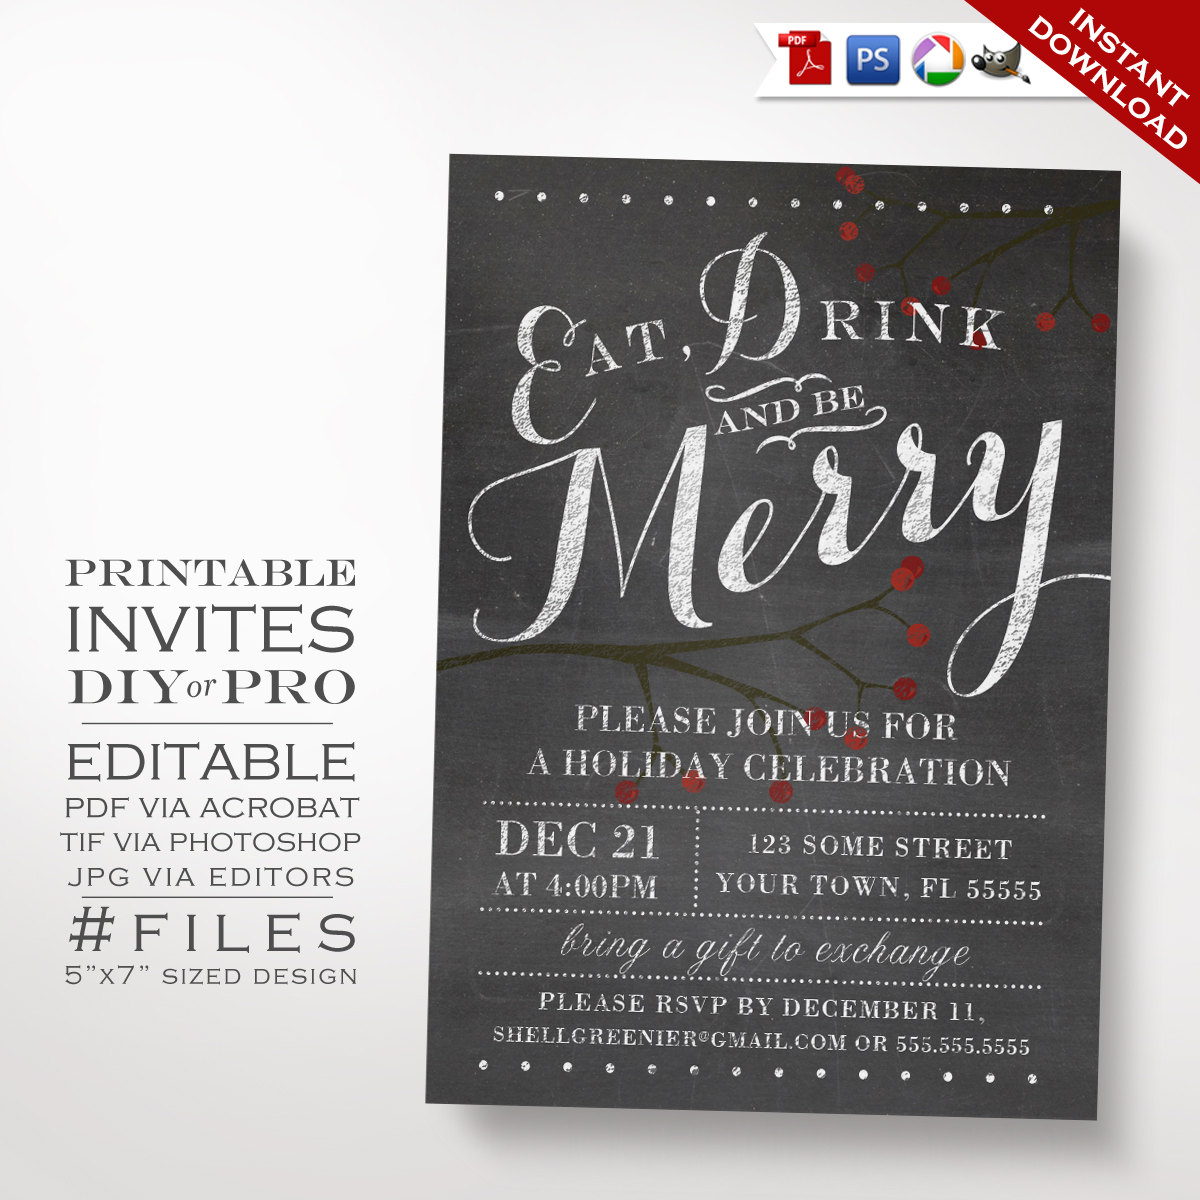 Printable diy christmas party invitation template winter template winter chalkboard holiday party invitation previous next stopboris